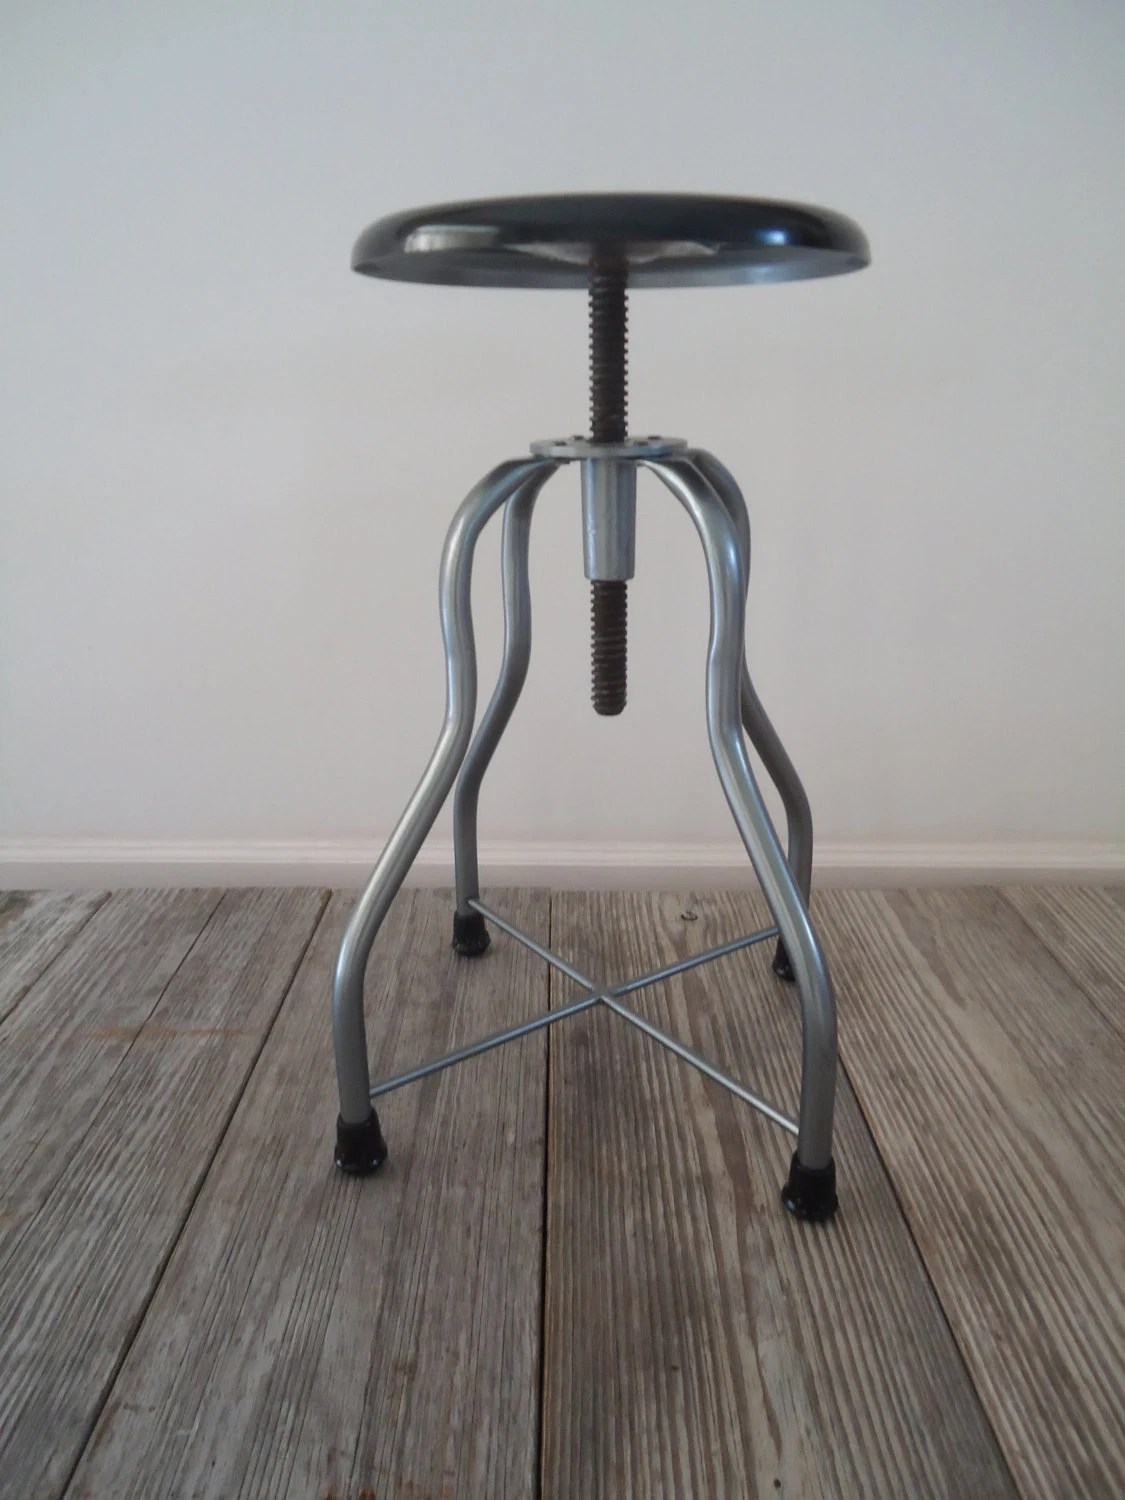 seng chicago chair office support cushion mid century modern adjustable swivel stool of mcm